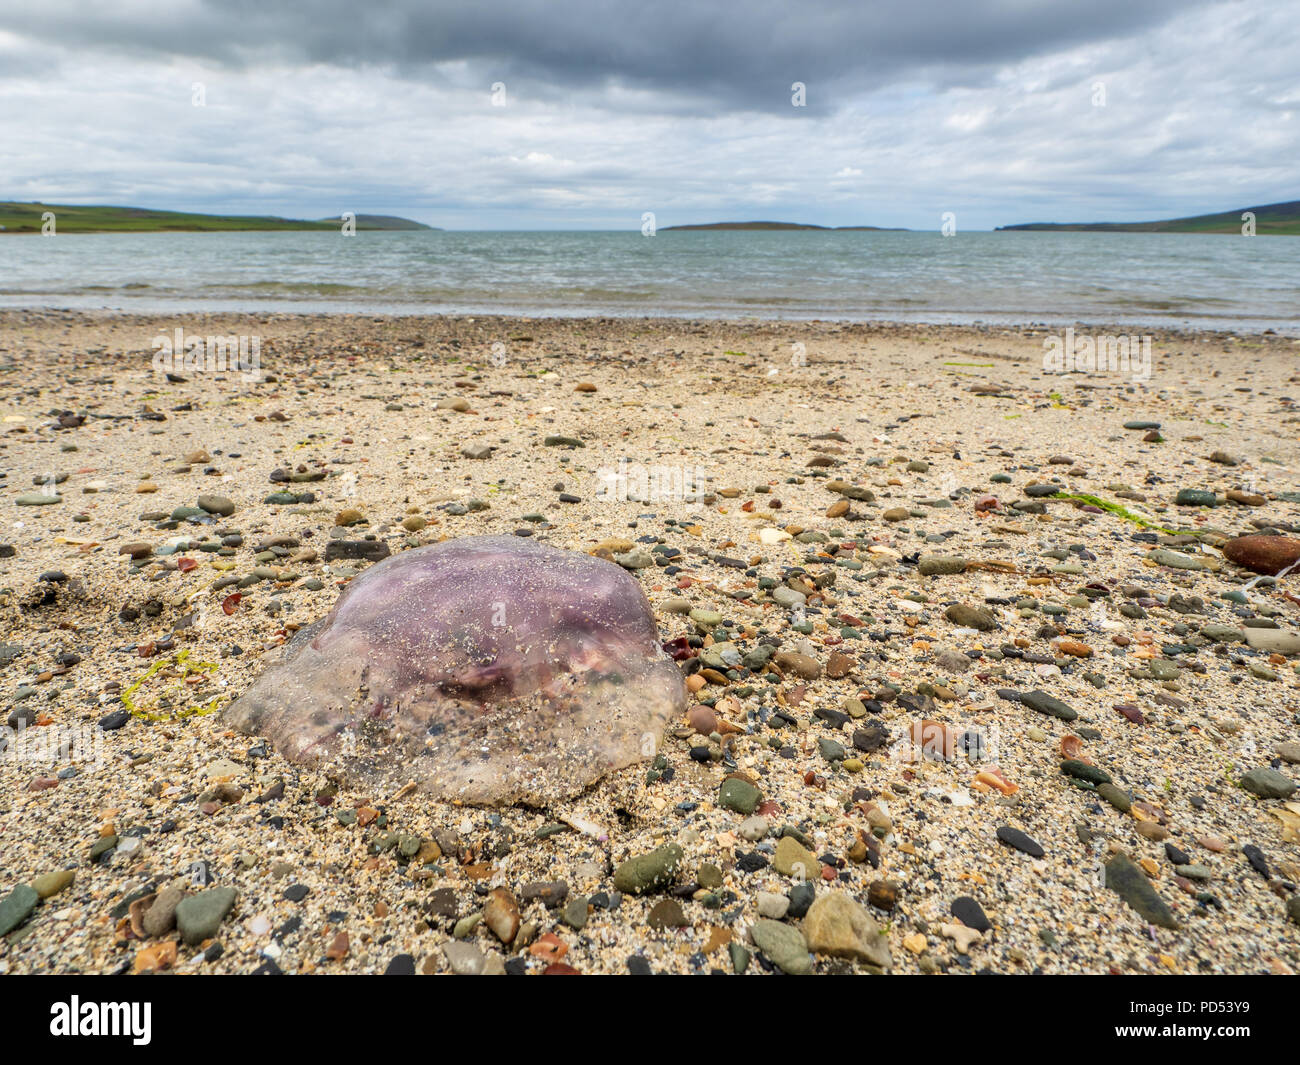 Washed up Jellyfish on Evie Sands, Orkney. - Stock Image